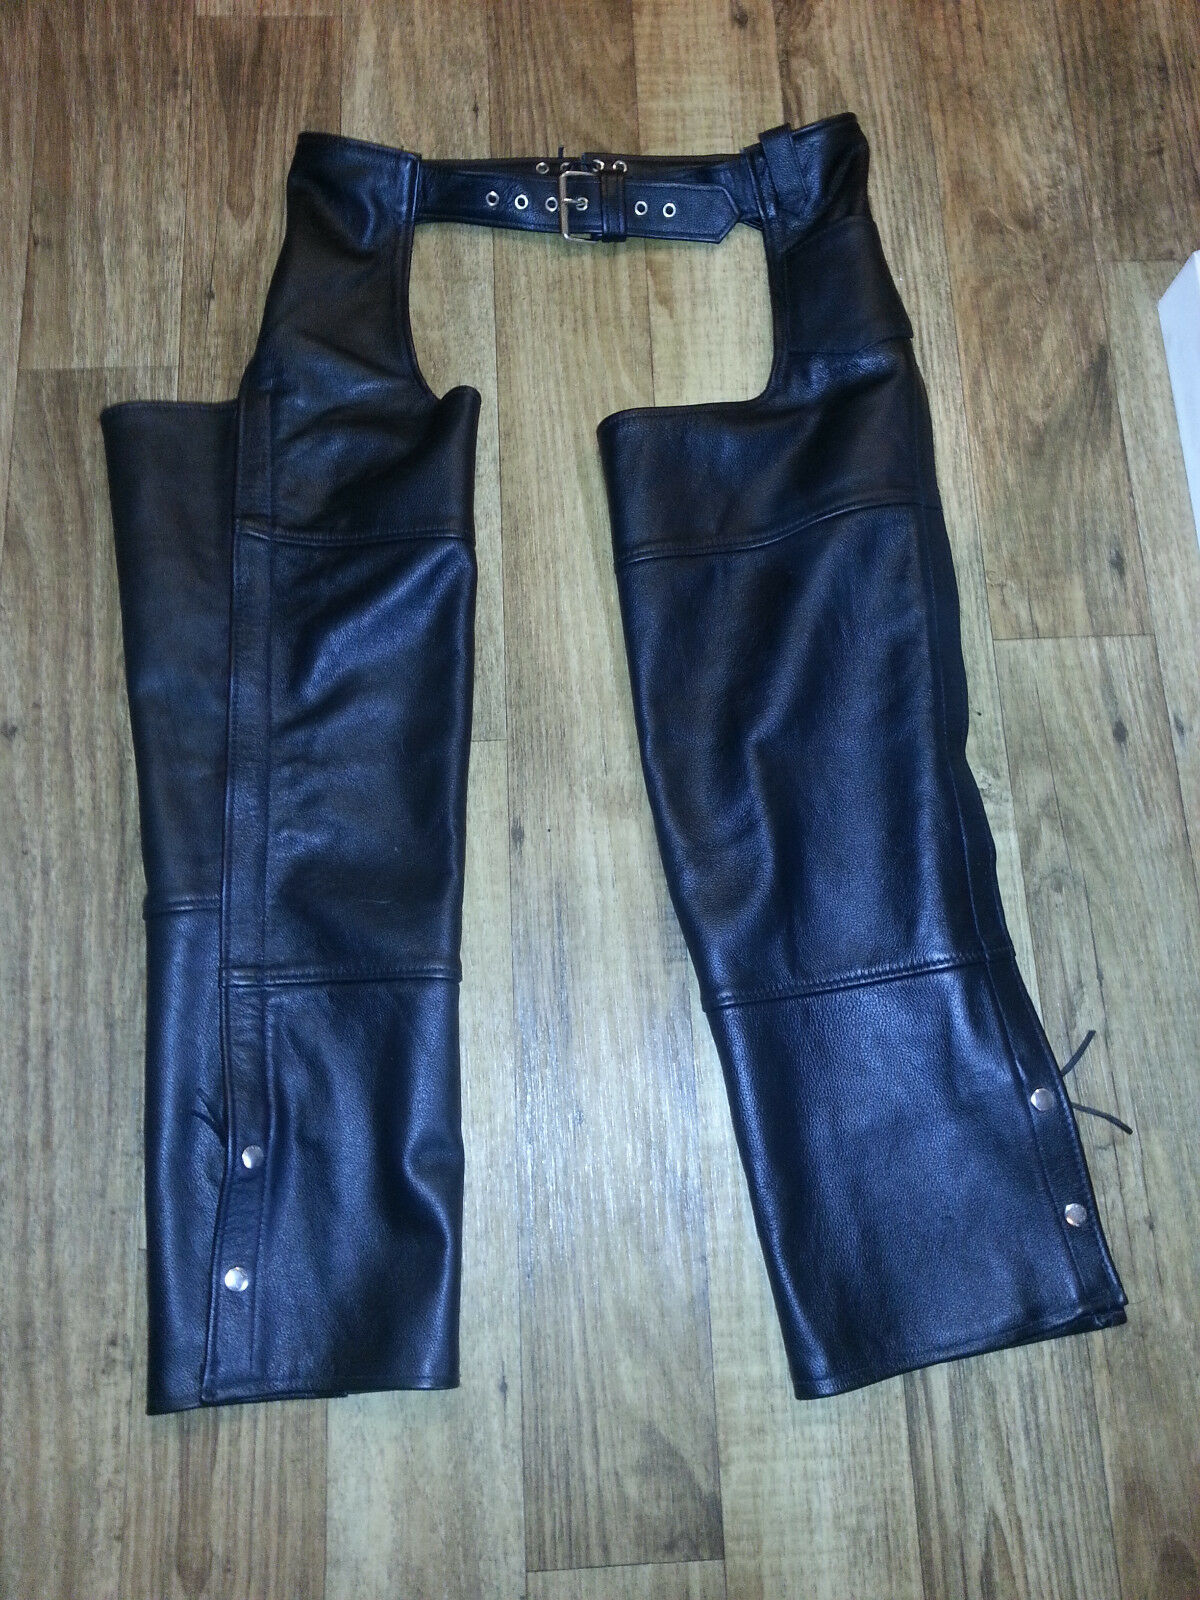 Womens FMC Leather Chaps size Large worn once